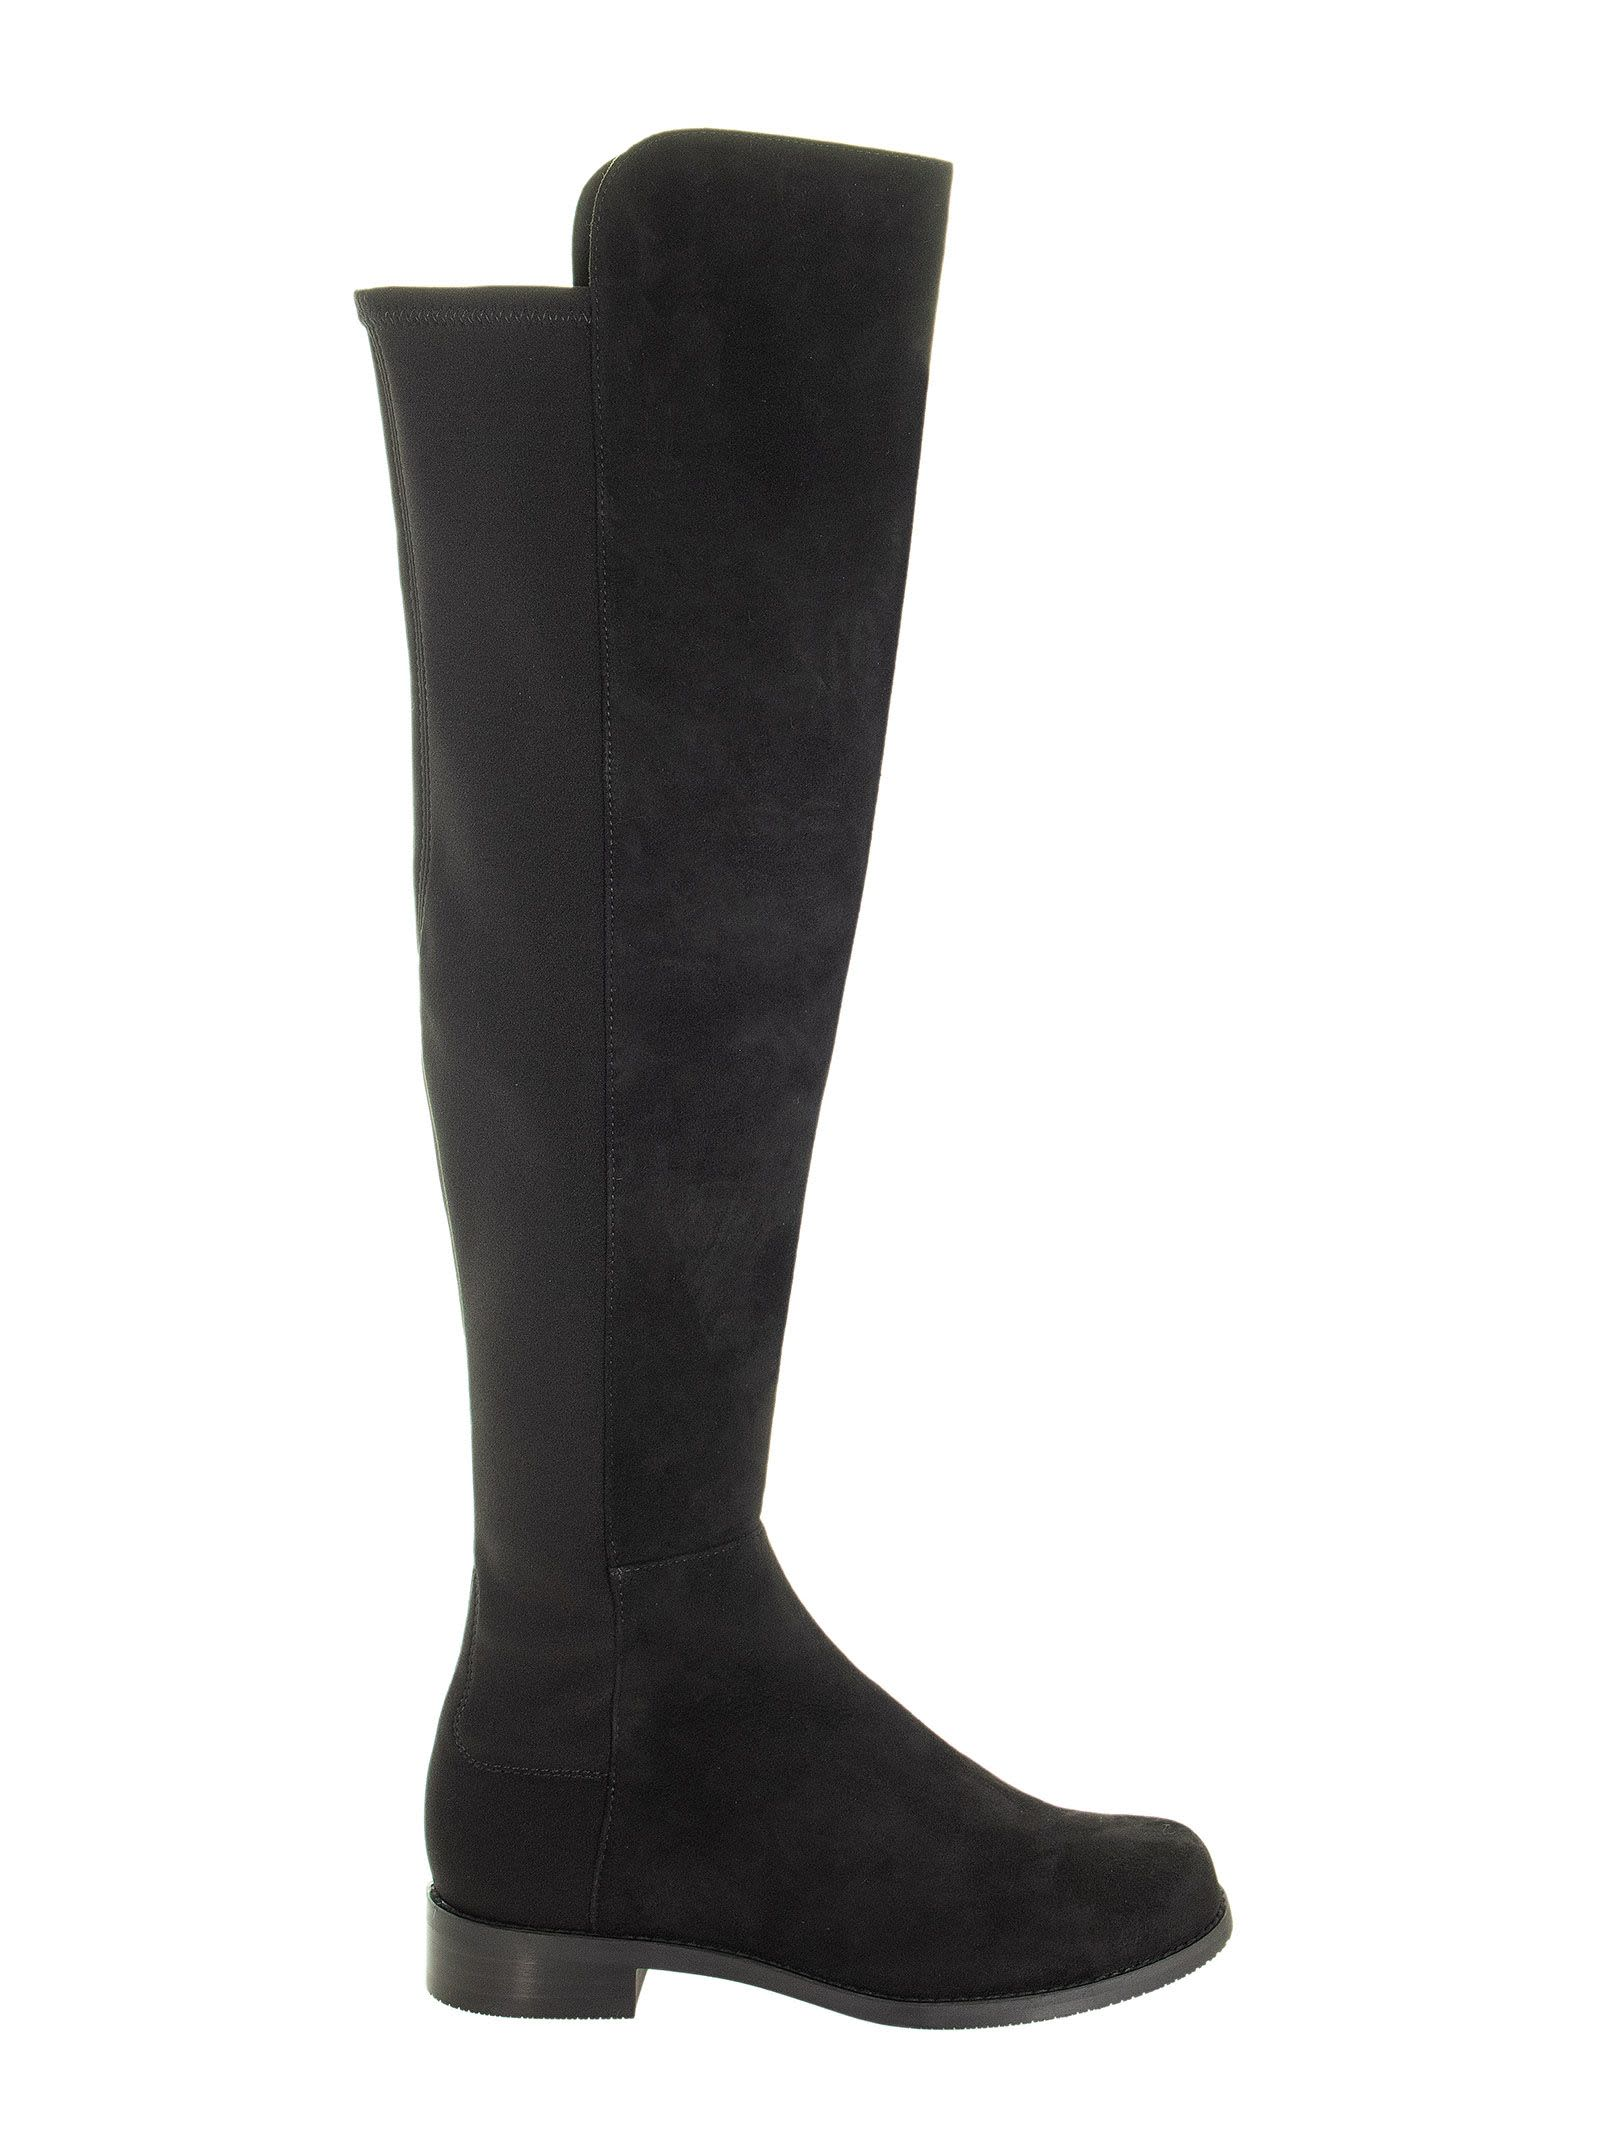 Buy Stuart Weitzman 5050 - Over The Knee Suede Boot online, shop Stuart Weitzman shoes with free shipping